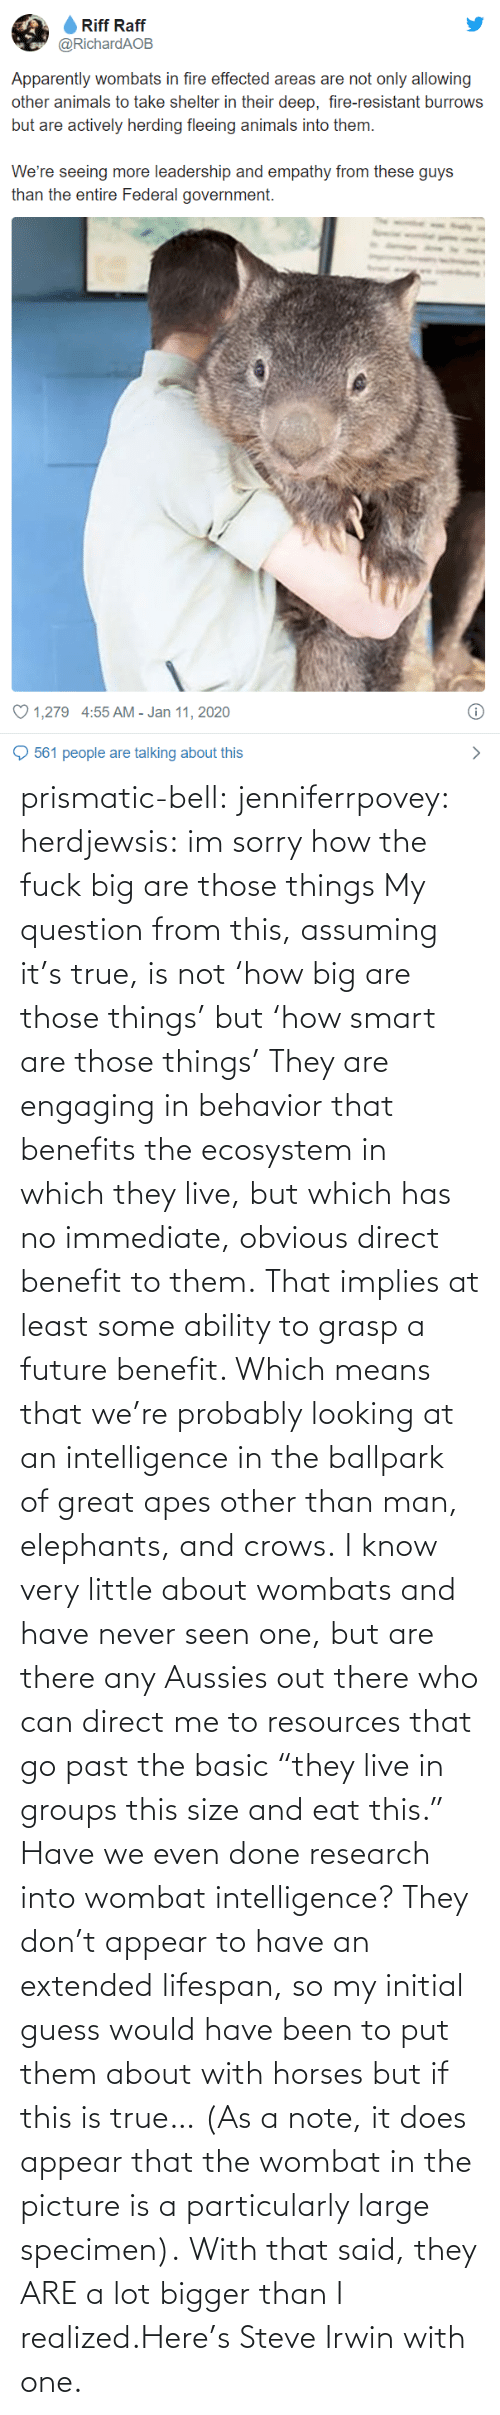 "them: prismatic-bell:  jenniferrpovey: herdjewsis: im sorry how the fuck big are those things My question from this, assuming it's true, is not 'how big are those things' but 'how smart are those things' They are engaging in behavior that benefits the ecosystem in which they live, but which has no immediate, obvious direct benefit to them. That implies at least some ability to grasp a future benefit. Which means that we're probably looking at an intelligence in the ballpark of great apes other than man, elephants, and crows. I know very little about wombats and have never seen one, but are there any Aussies out there who can direct me to resources that go past the basic ""they live in groups this size and eat this."" Have we even done research into wombat intelligence? They don't appear to have an extended lifespan, so my initial guess would have been to put them about with horses but if this is true… (As a note, it does appear that the wombat in the picture is a particularly large specimen).  With that said, they ARE a lot bigger than I realized.Here's Steve Irwin with one."